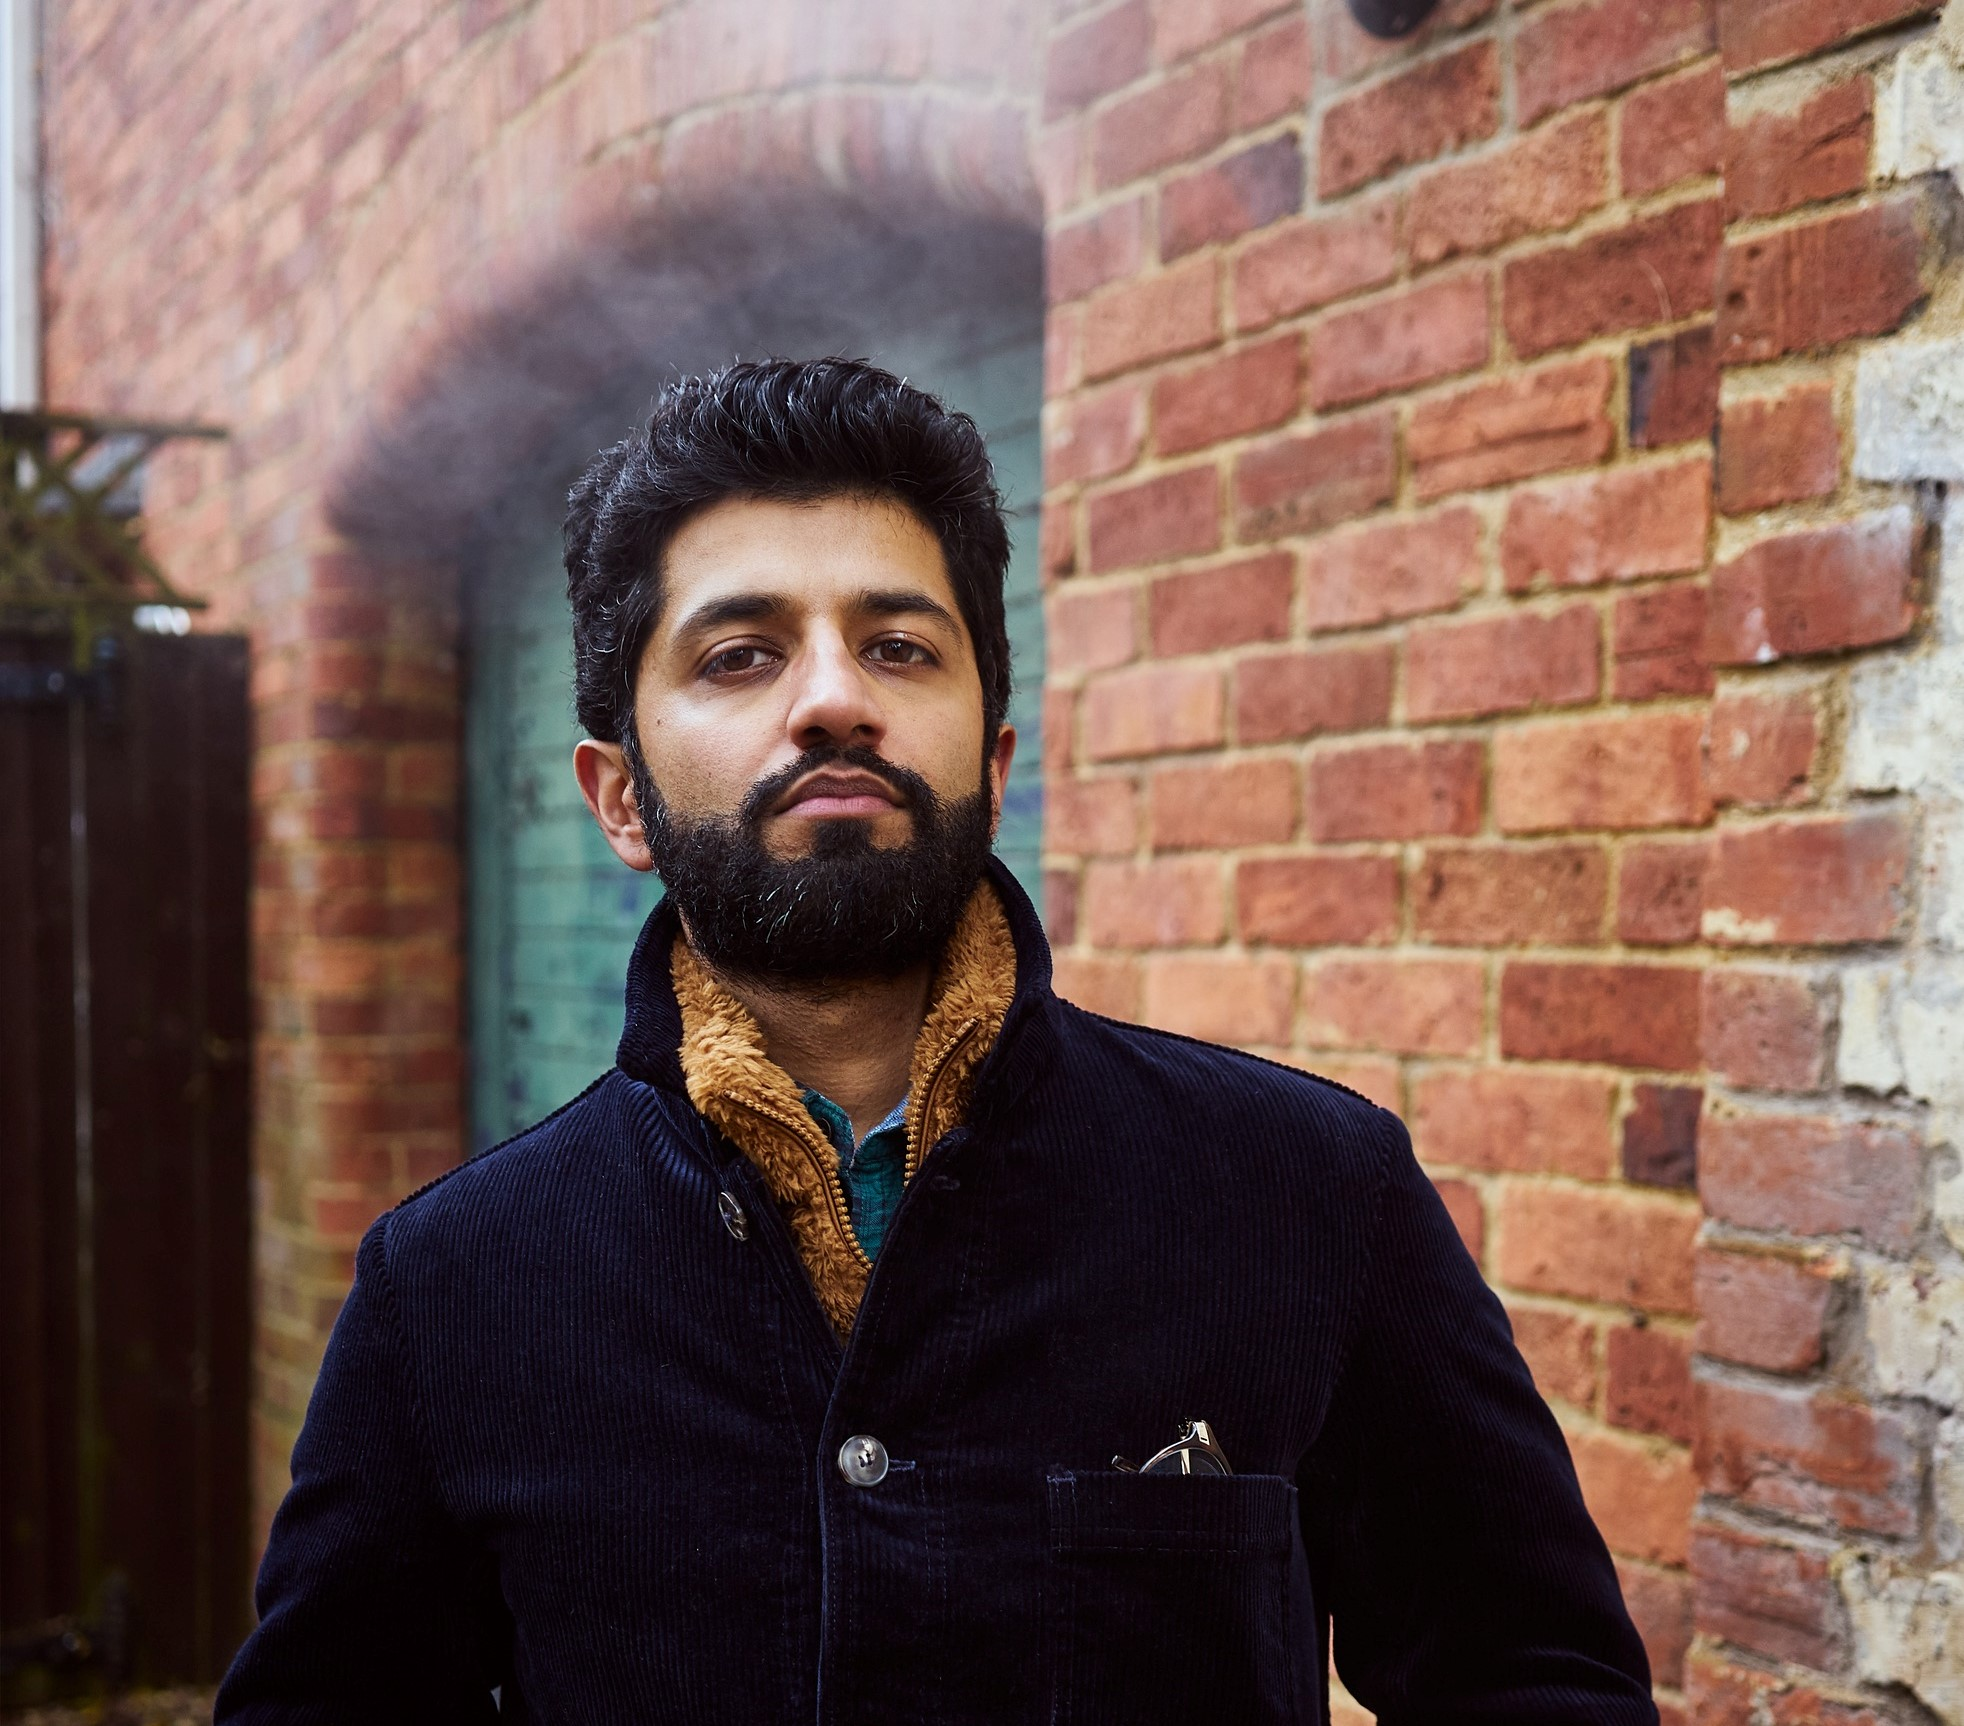 The debut EP by Oxford-based Riaz Ahmad (pictured) features themes on love, family and migration